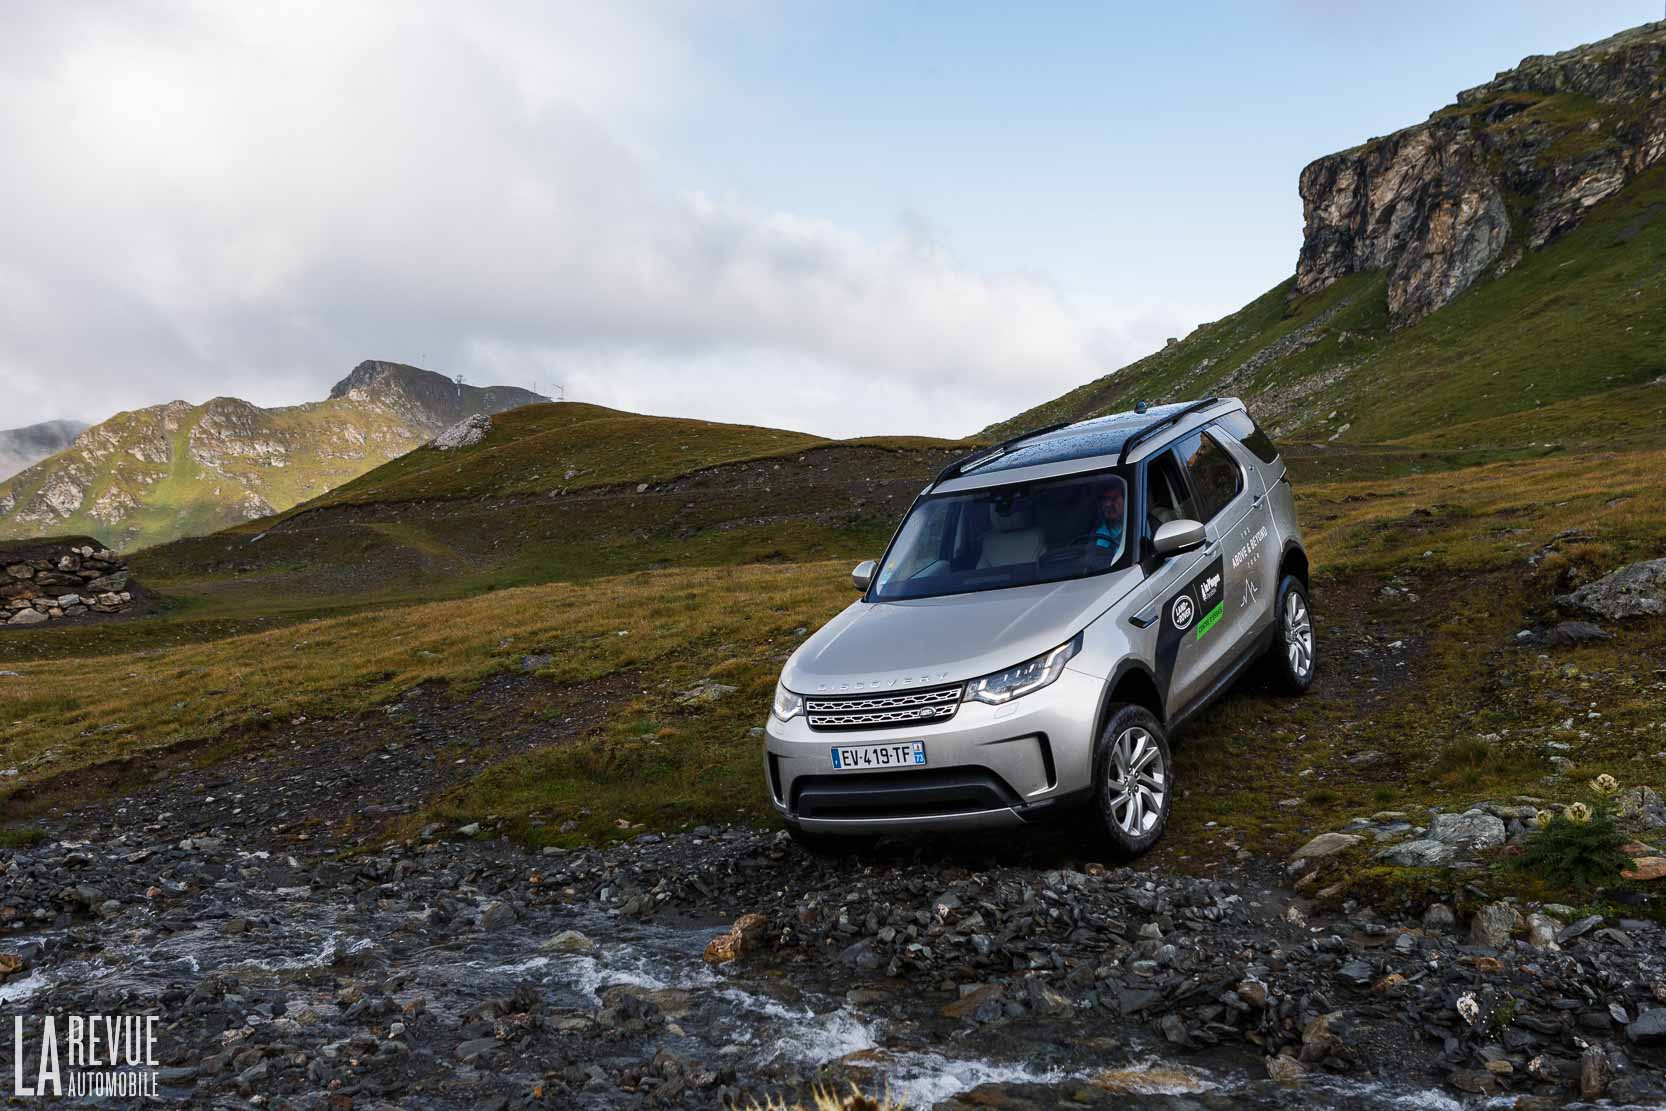 Exterieur_Land-Rover-Discovery-SD4-HSE-Luxury_28